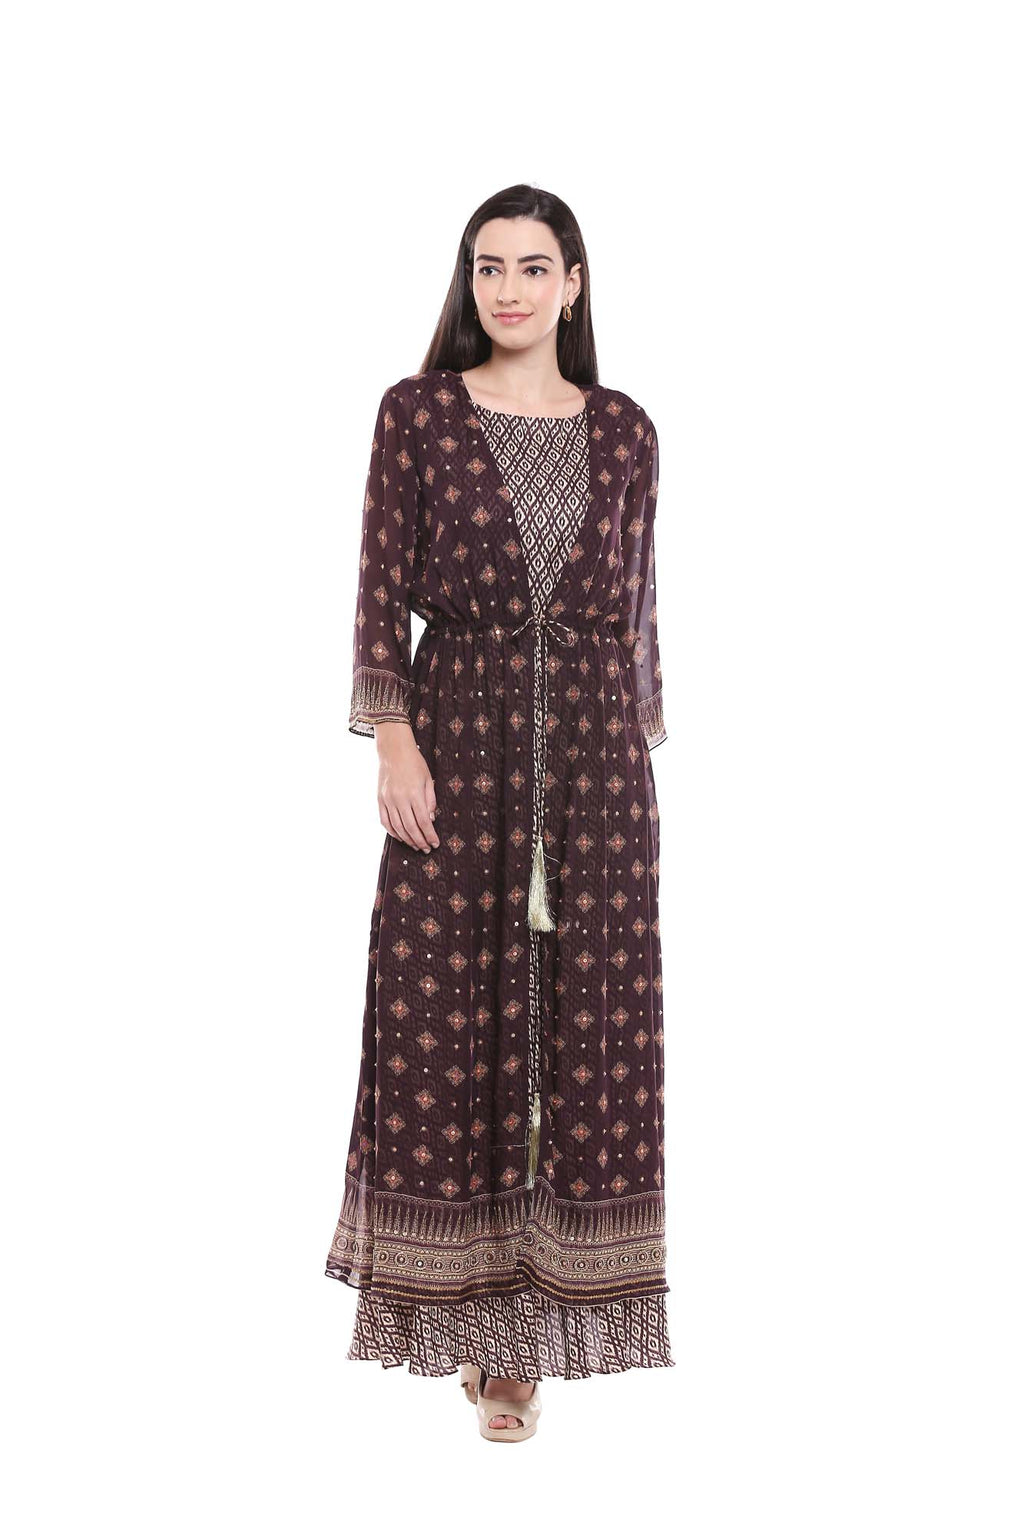 Ikat Printed Black and Beige Flared Dress with Back Jacket - Riviera Closet